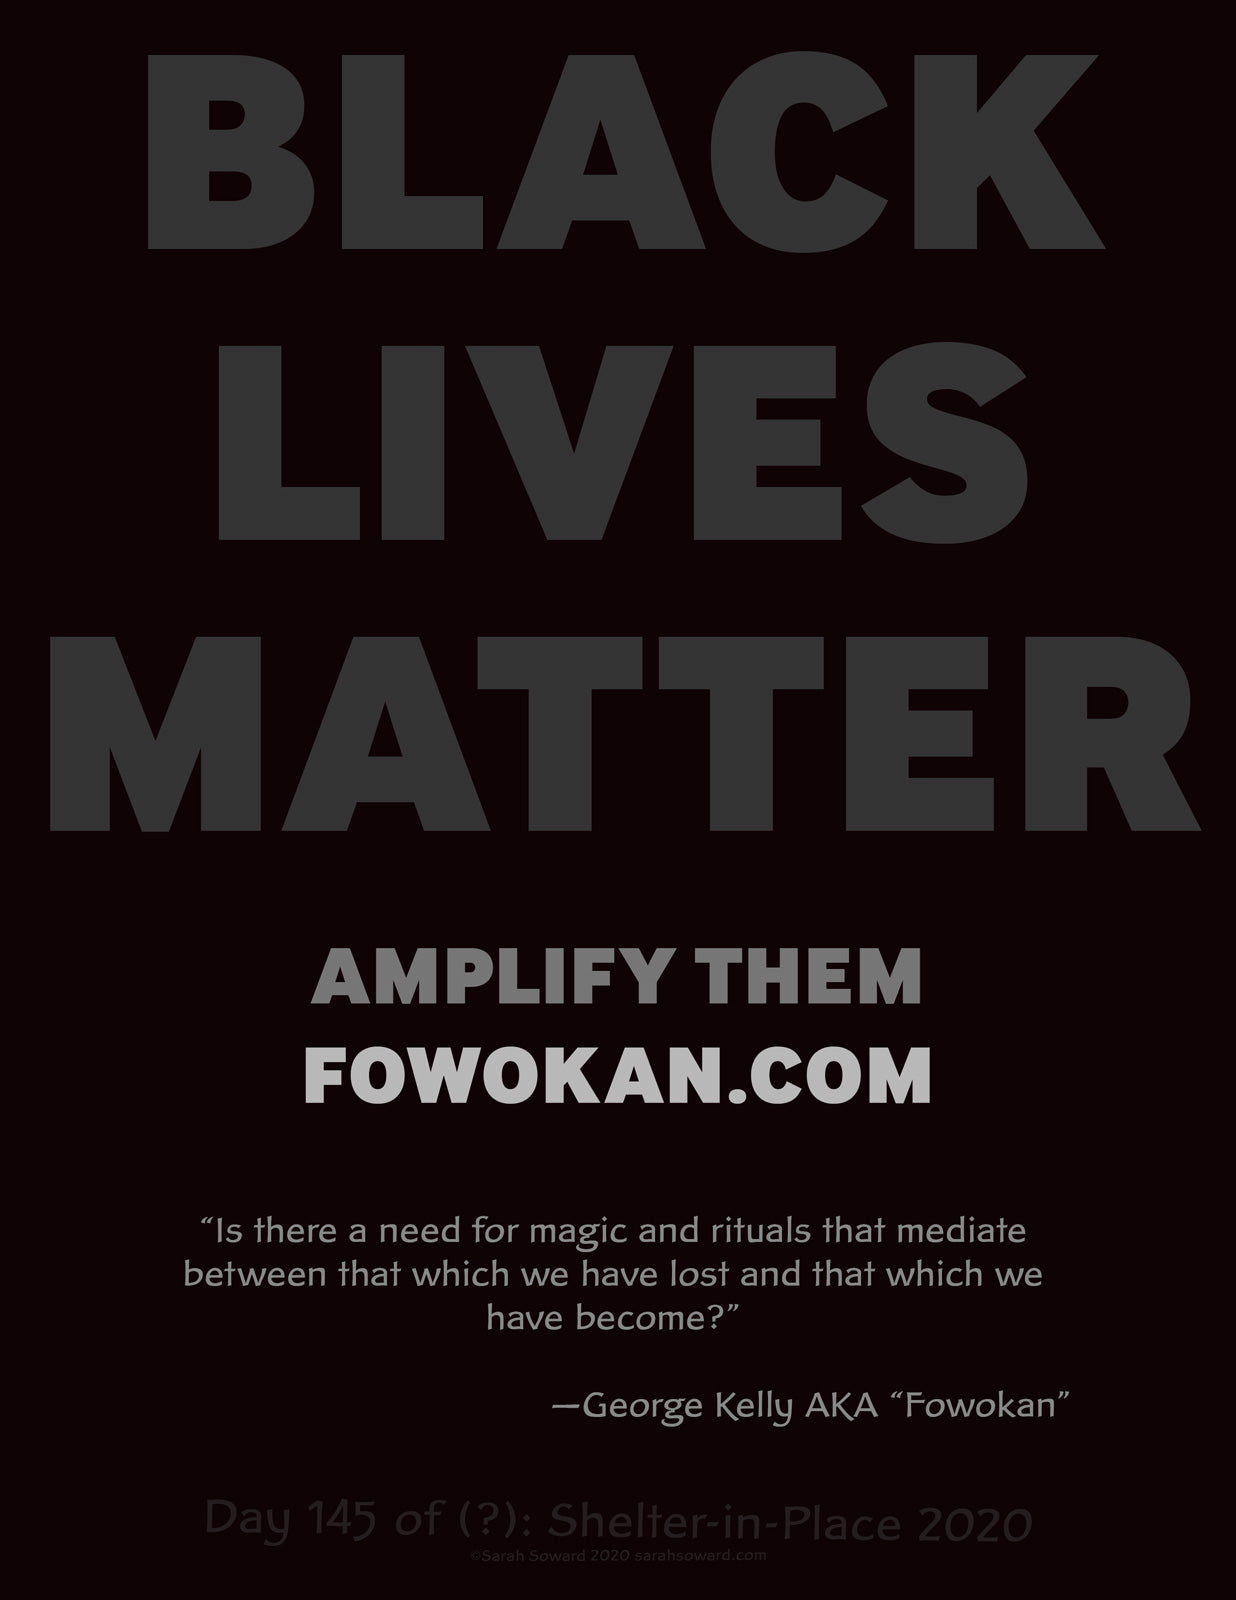 This is a text based image. The text on the image reads BLACK LIVES MATTER AMPLIFY THEM fowokan.com Is there a need for magic and rituals that mediate between that which we have lost and that which we have become? —George Kelly AKA Fowokan